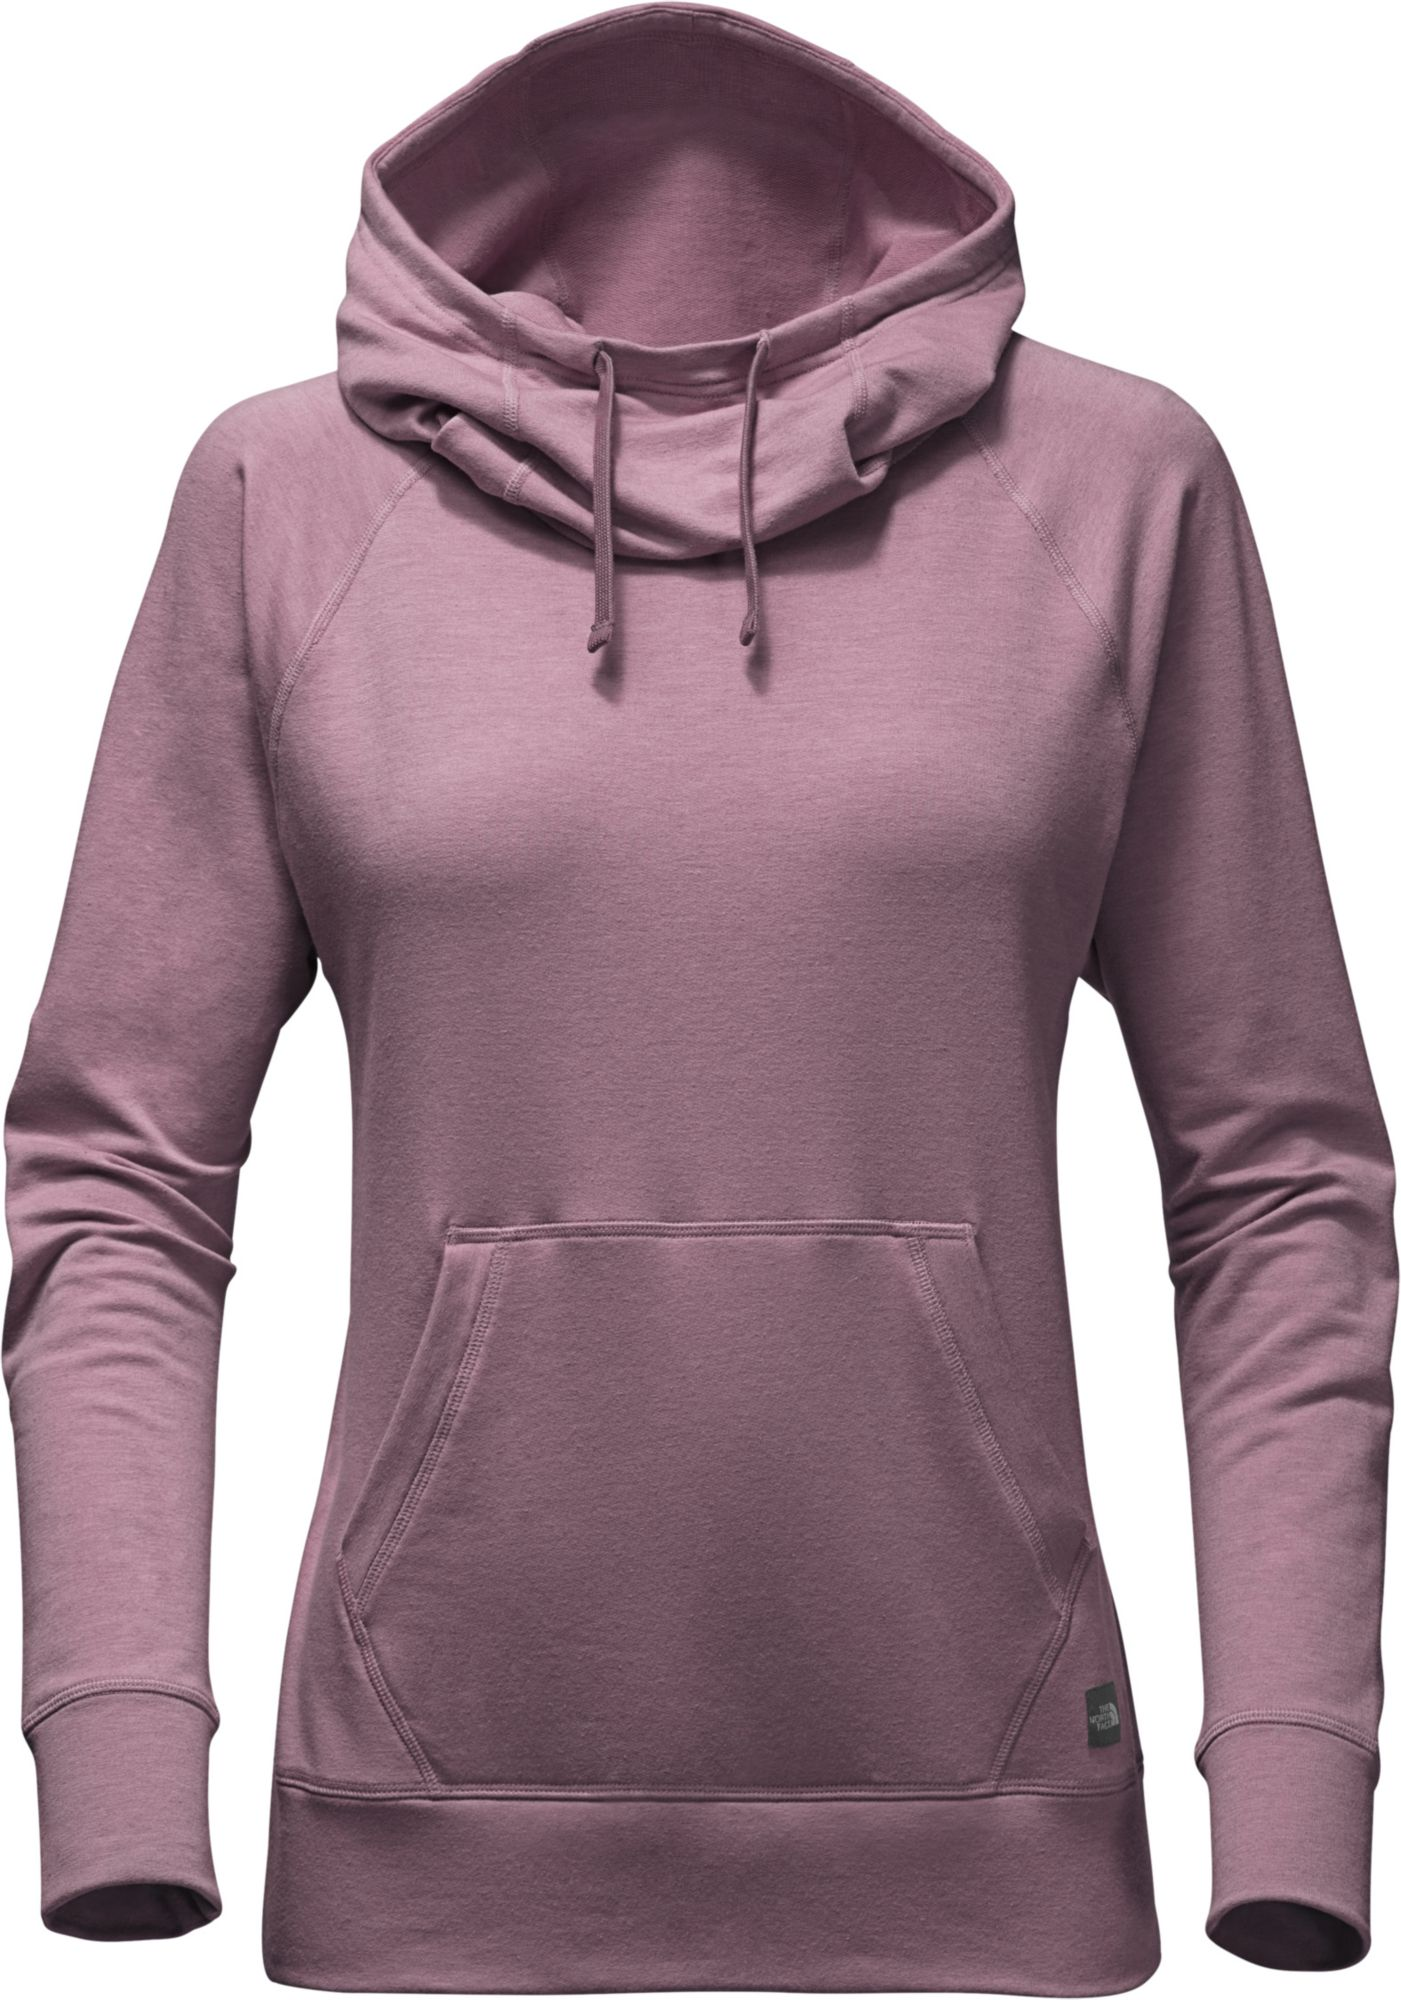 The North Face Women's TNF Terry Hooded Pullover | DICK'S Sporting ...